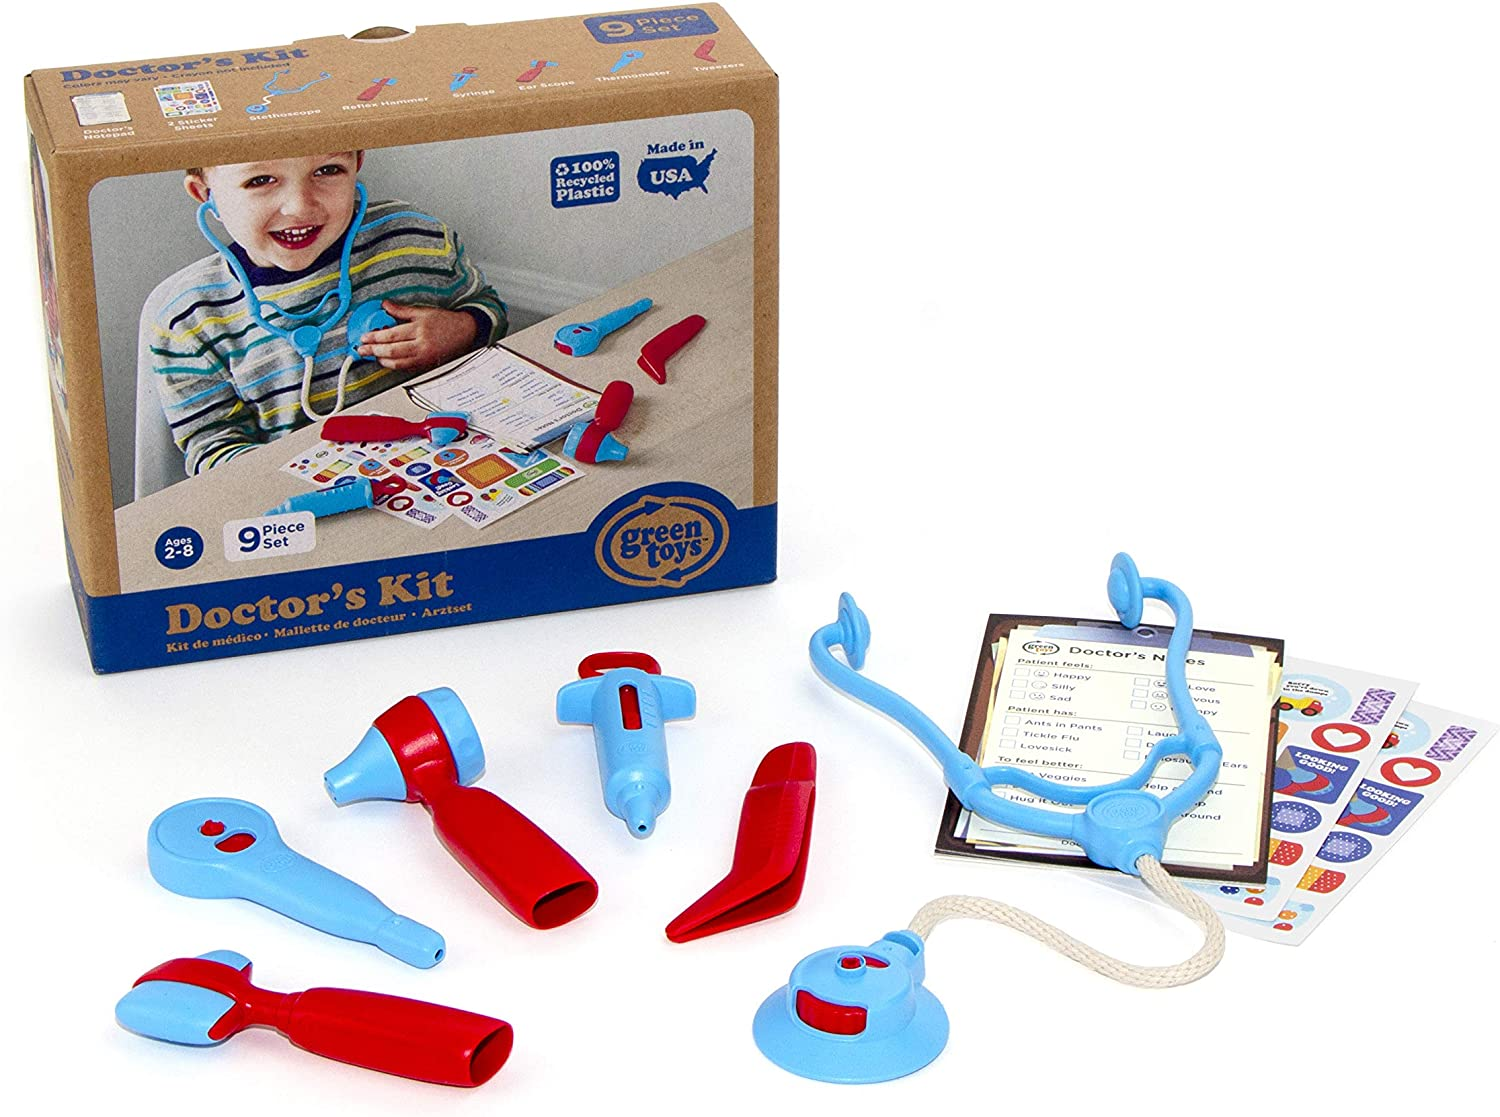 Green Toys Doctor's Kit, Red/Blue - 9 Piece Pretend Play, Motor Skills, Language & Communication Kids Role Play Toy. No BPA, phthalates, PVC. Dishwasher Safe, Recycled Plastic, Made in USA.